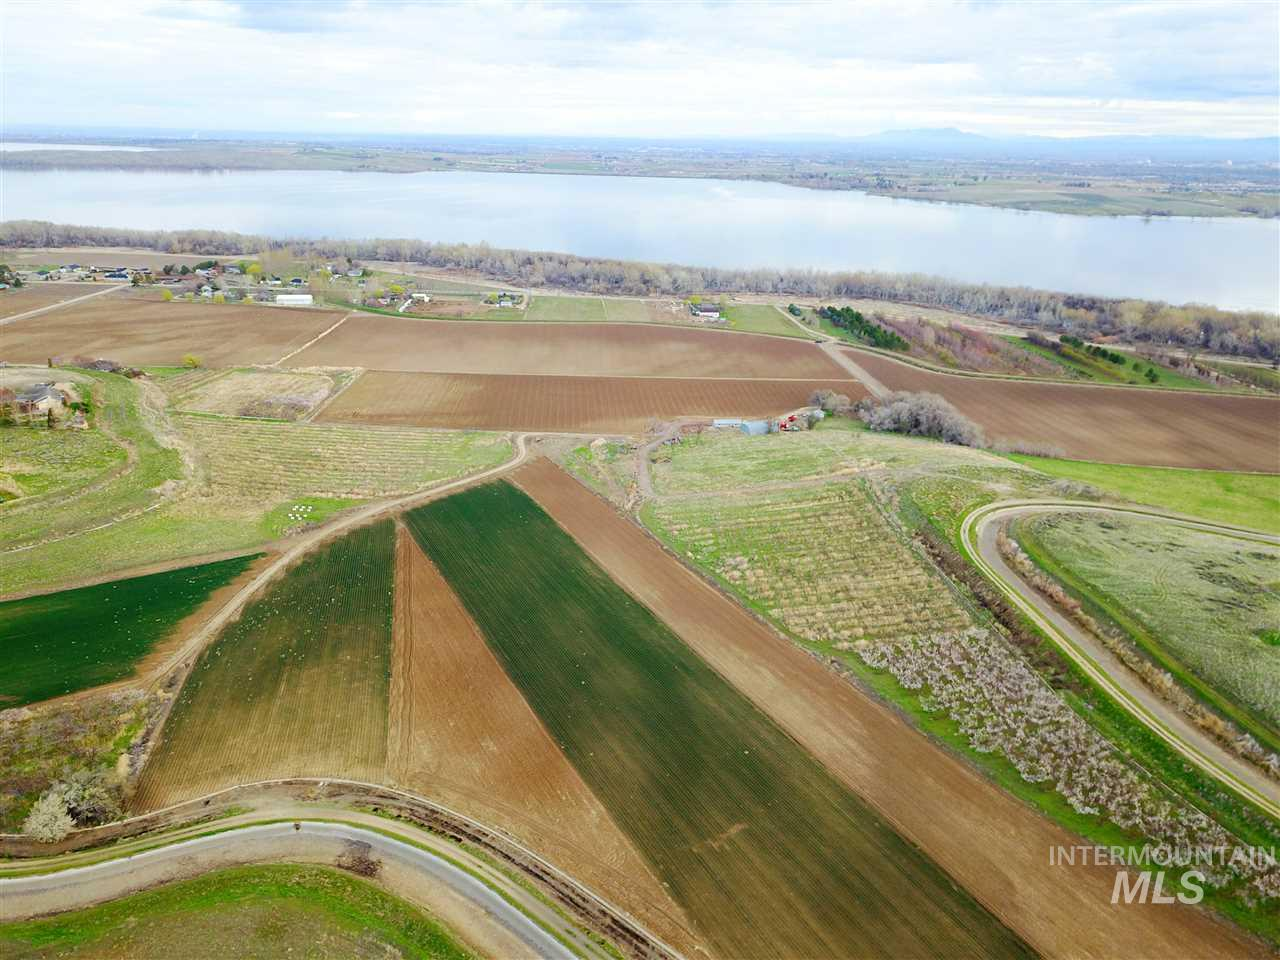 13003 Lake Shore Dr, Nampa, Idaho 83686, Land For Sale, Price $1,112,000, 98784537